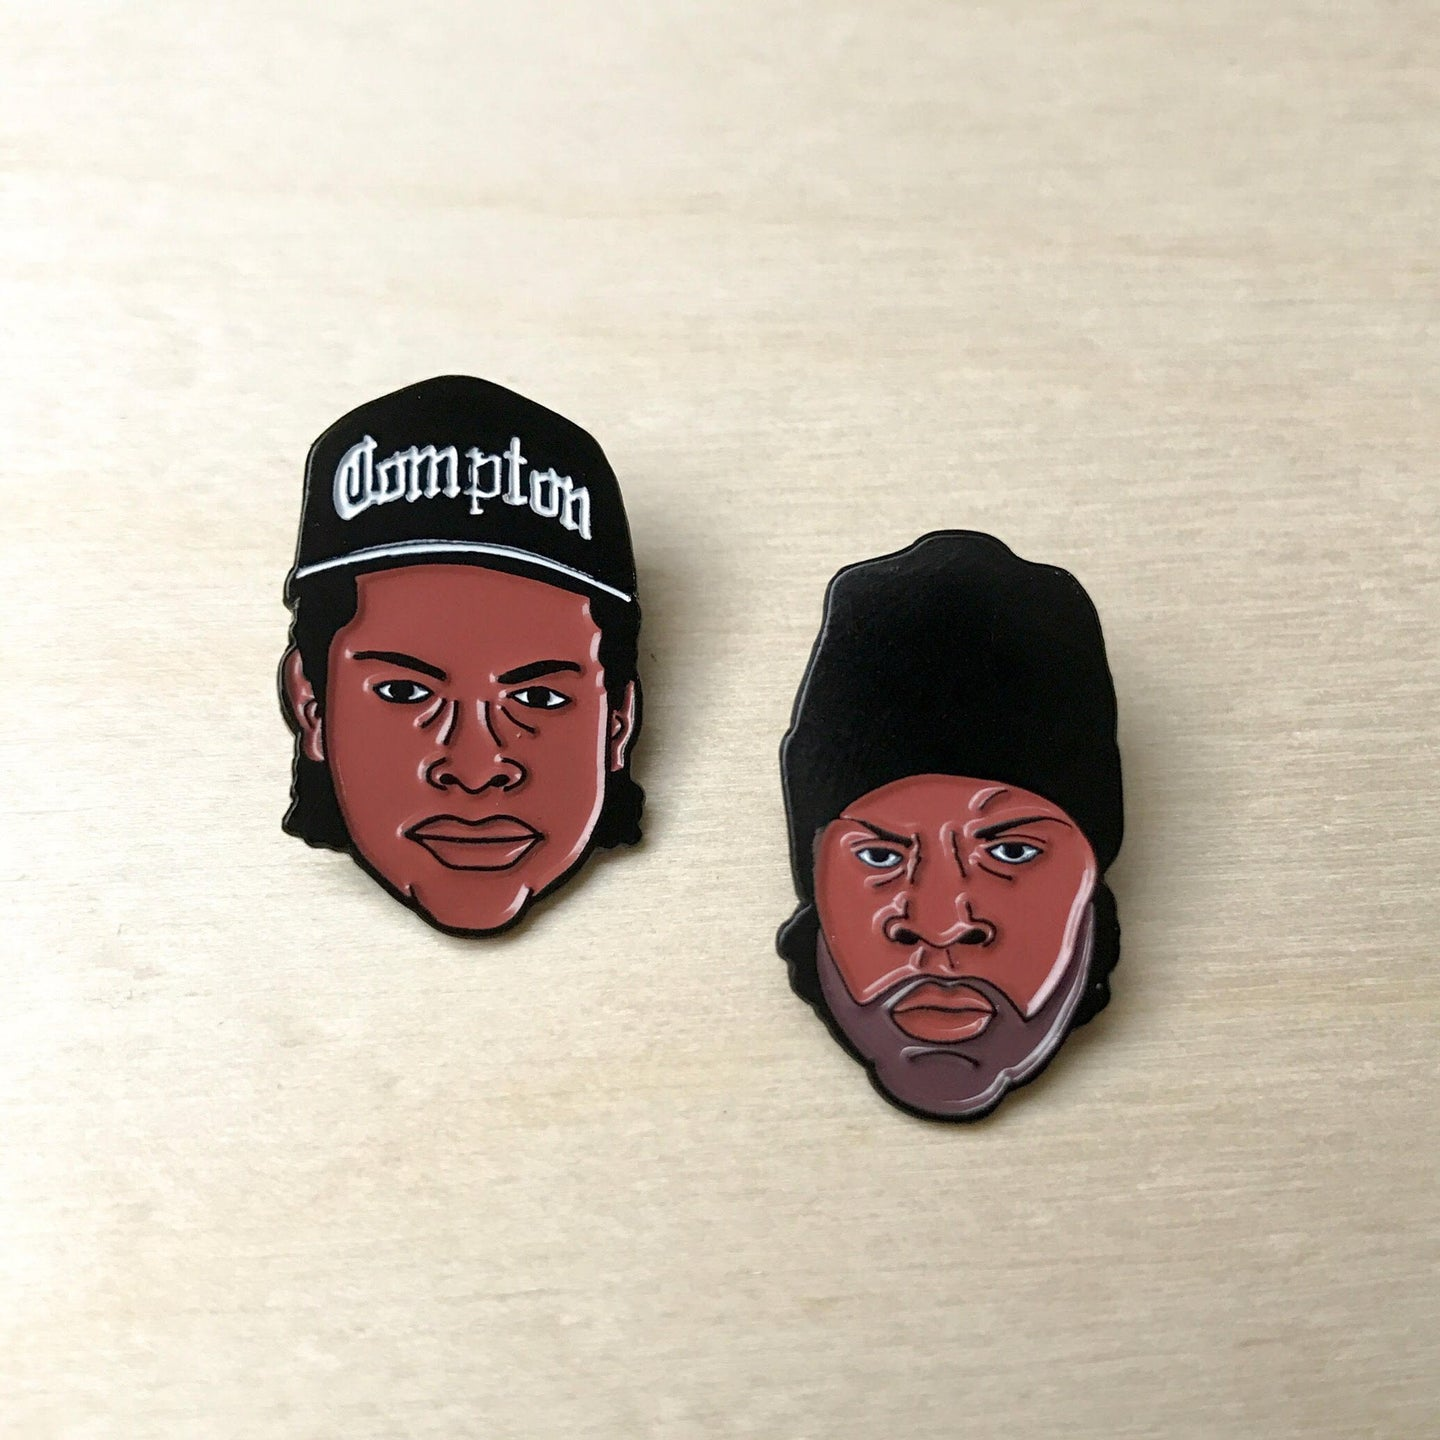 NWA PIN PACK